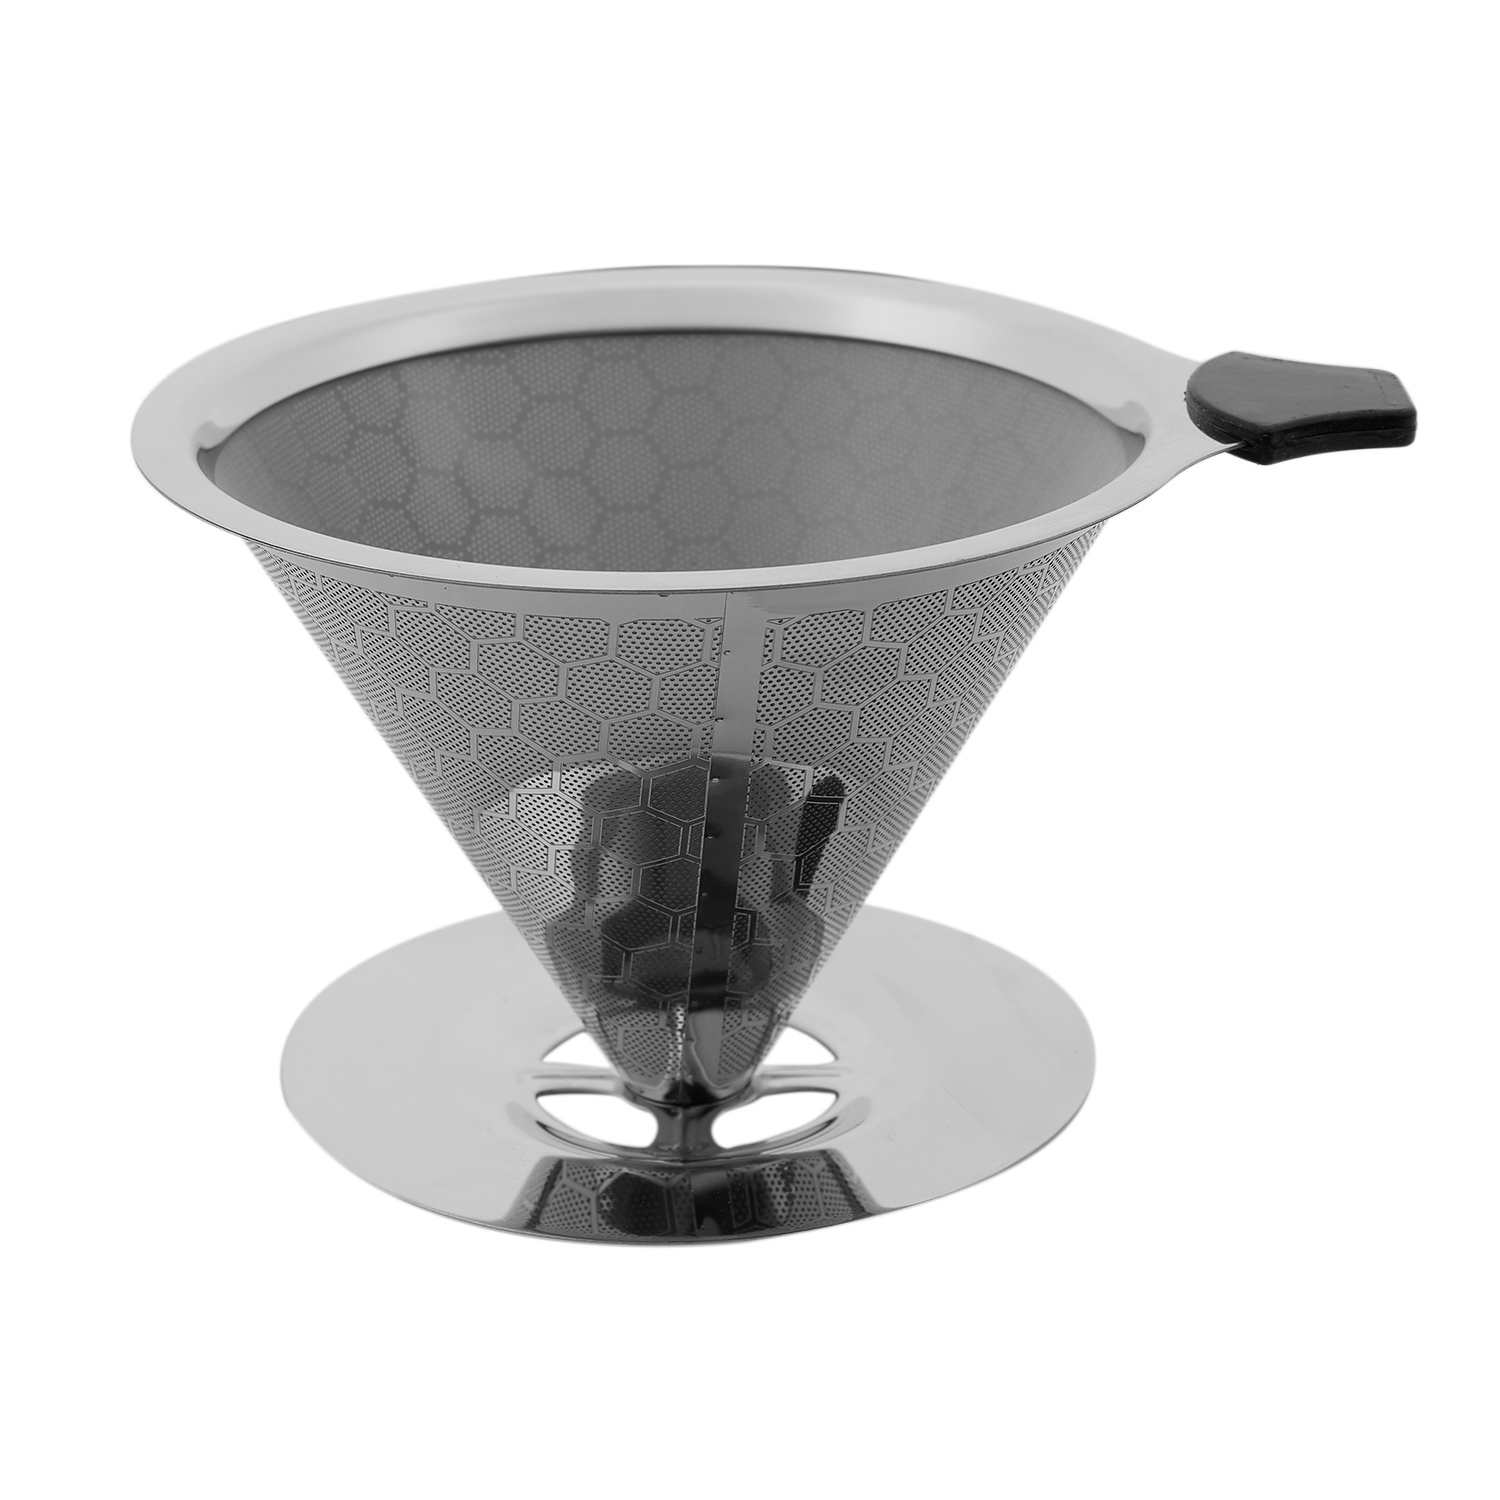 Stainless Steel Double Layer Coffee Filter Reusable Pour Over Coffee Dripper Cone With Non-Slip Stand And Brush Honeycomb